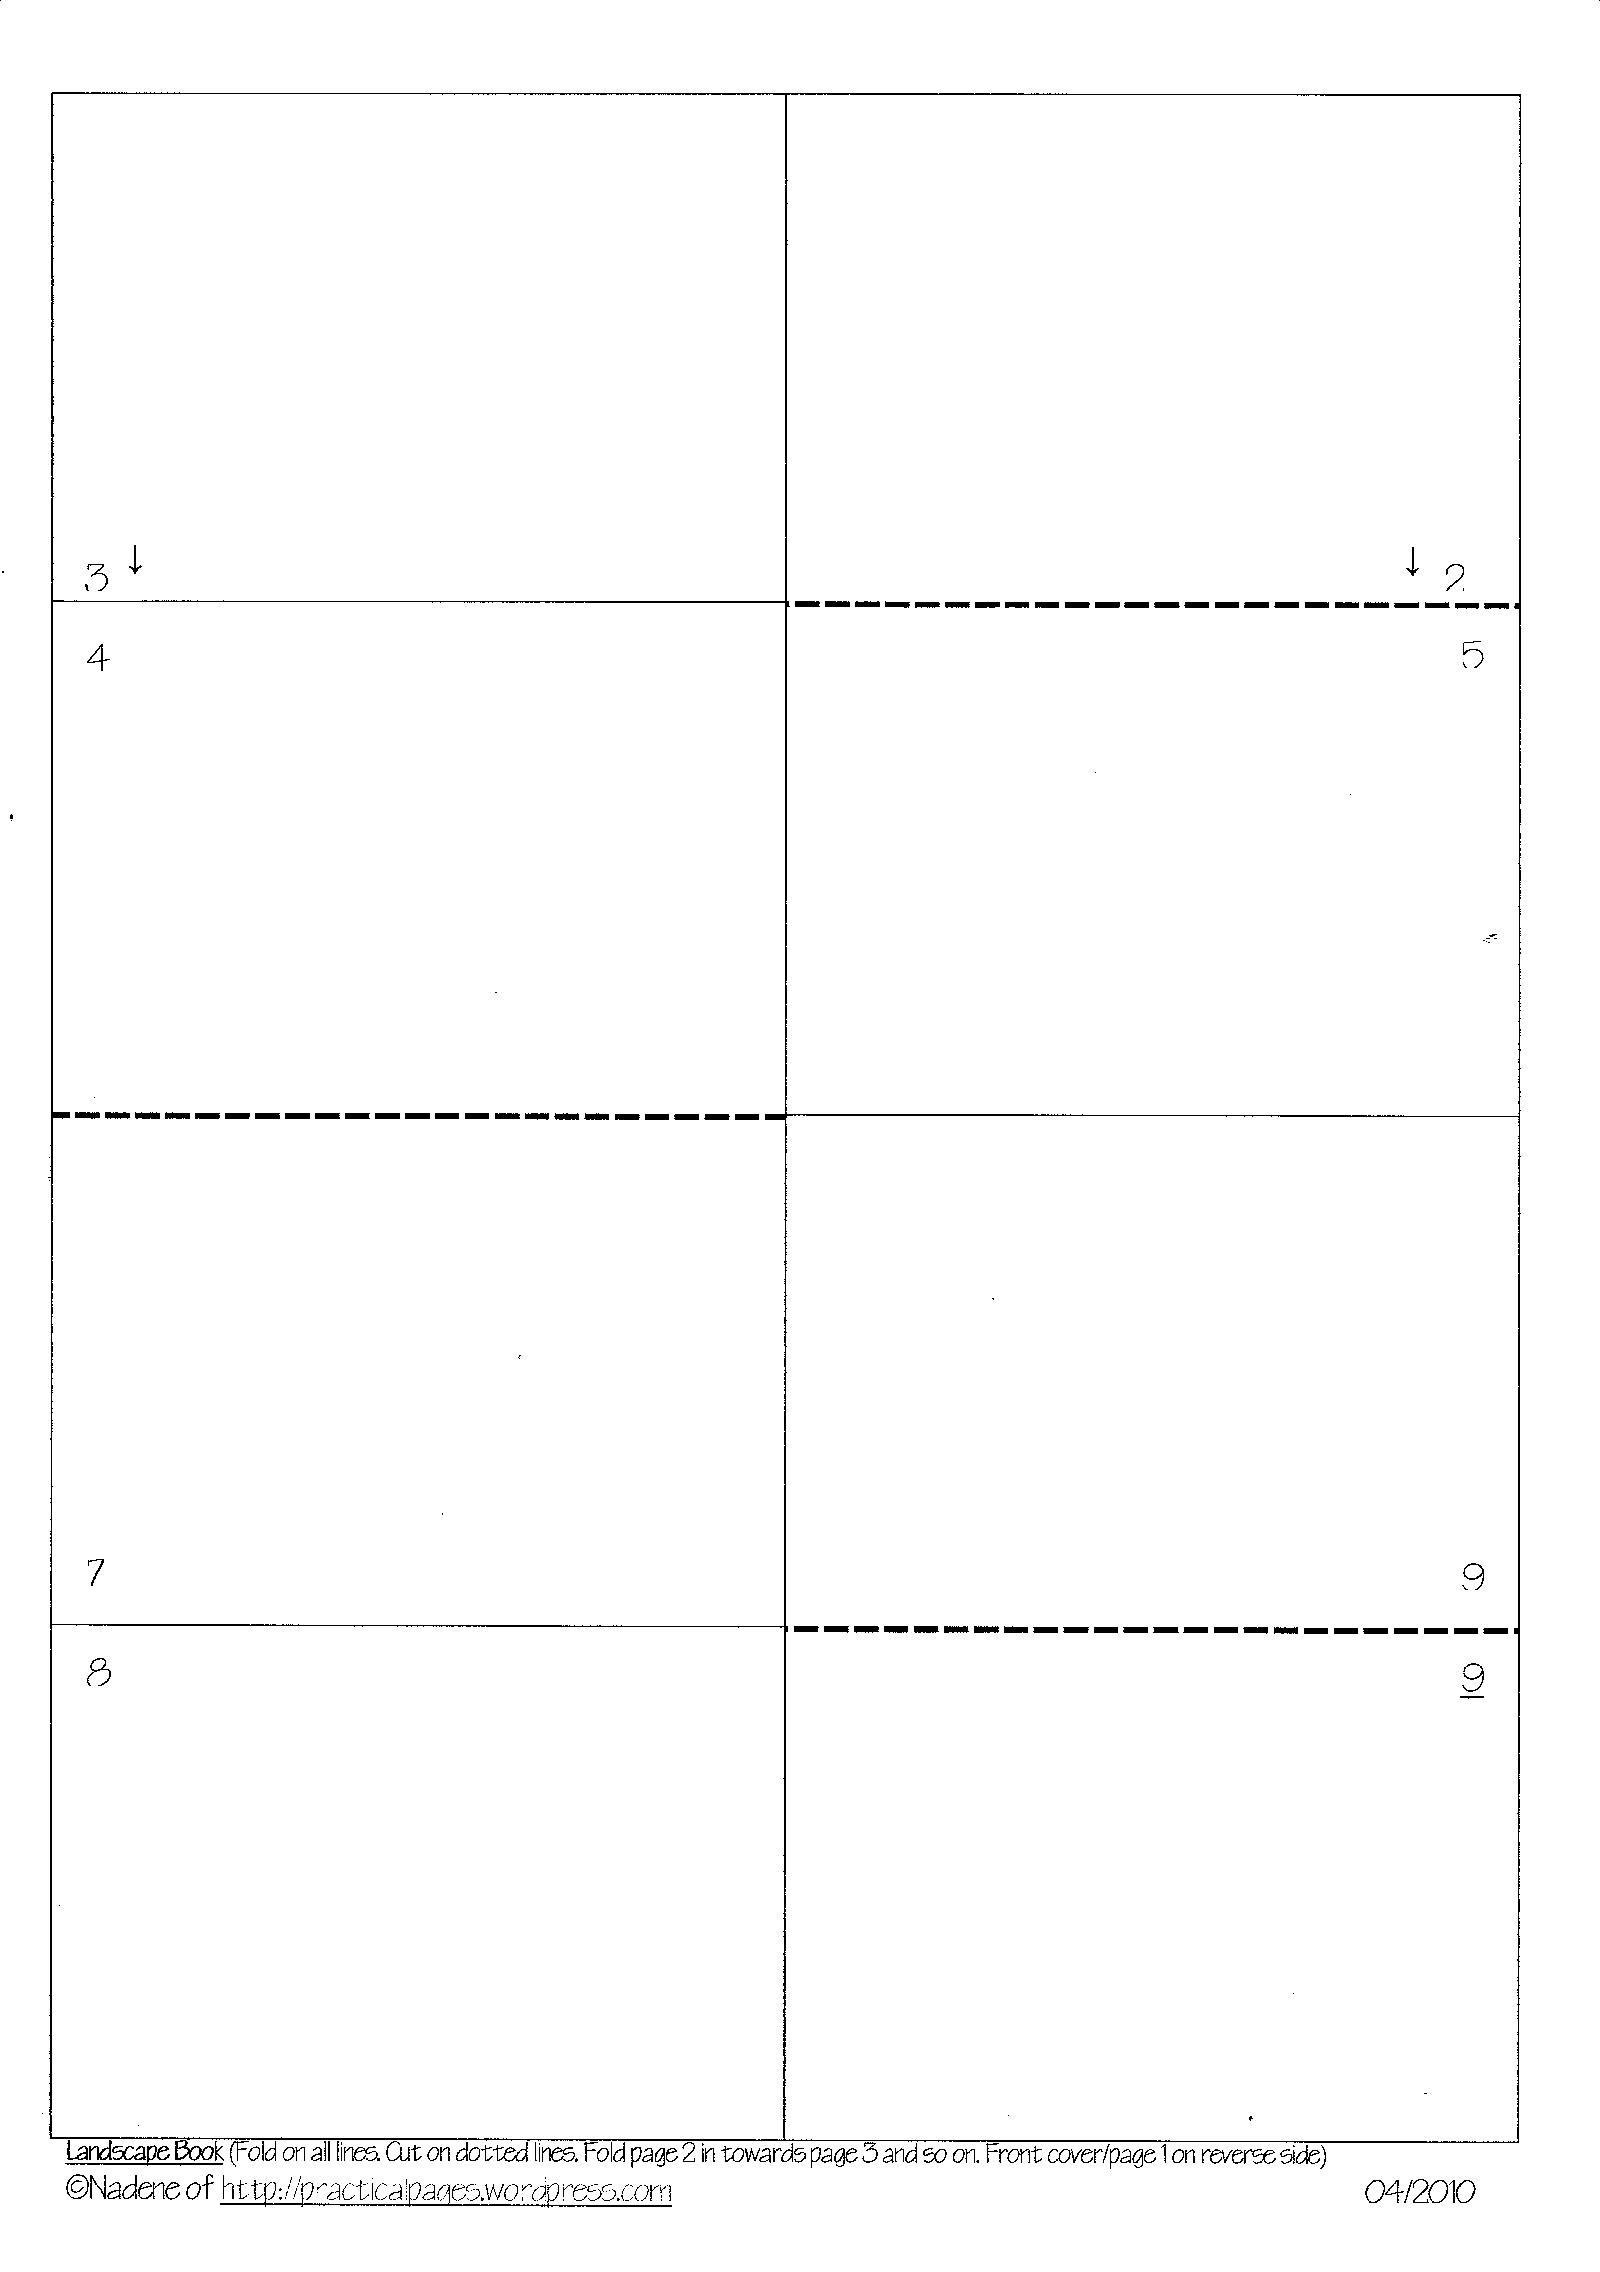 one landscape page in a word document